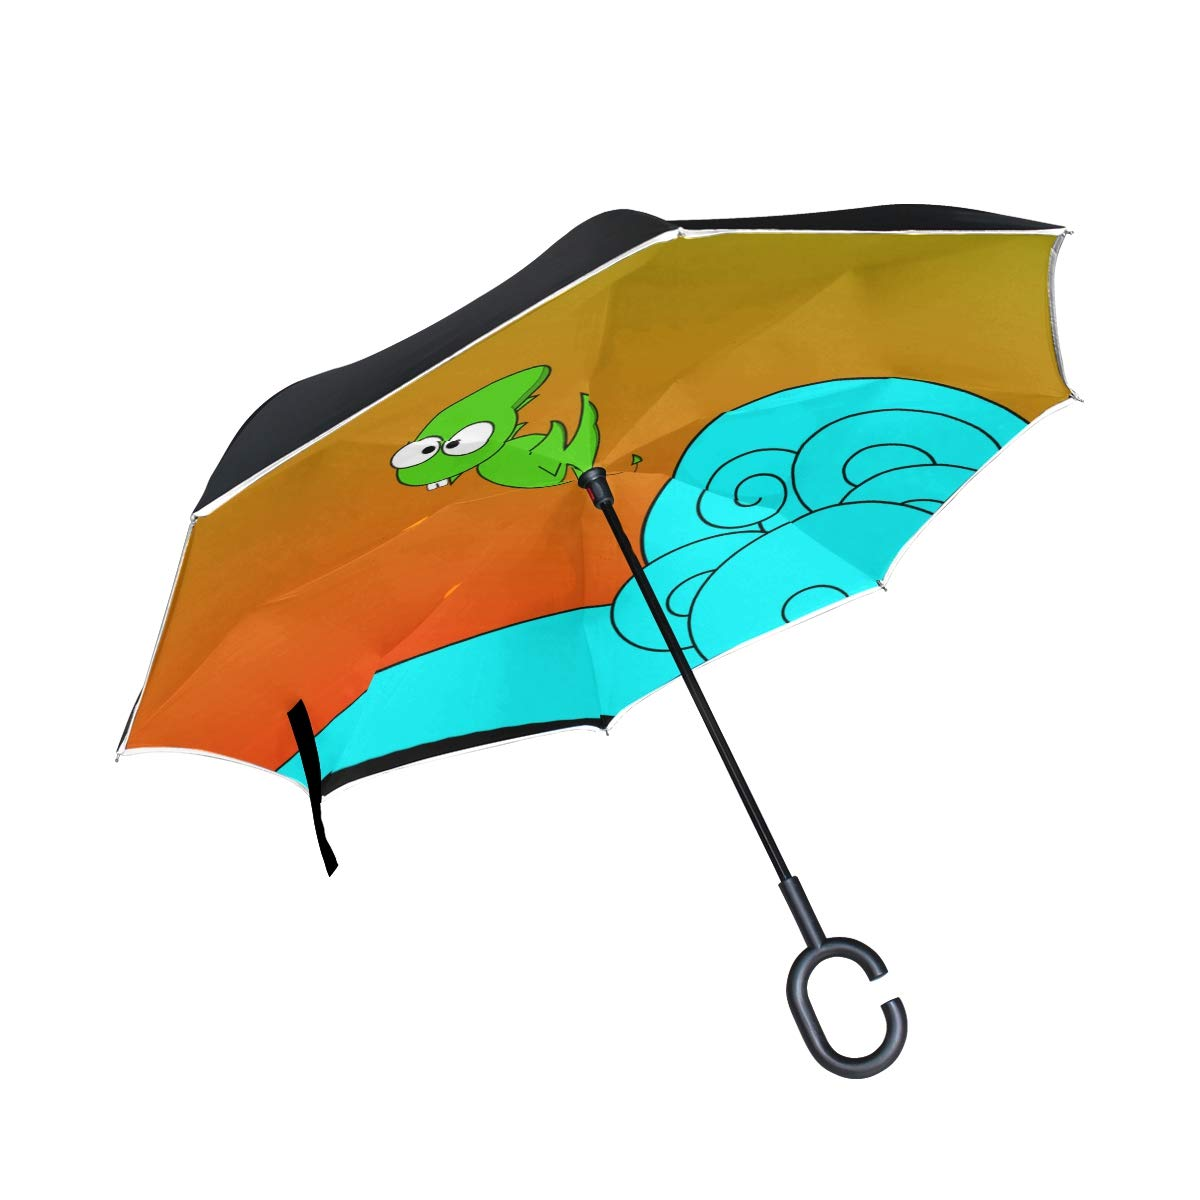 Jnseff Double Layer Inverted Dragon Dino Dinosaur Fun Pterodactyl Wave Surf Umbrellas Reverse Folding Umbrella Windproof Uv Protection Big Straight Umbrella for Car Rain Outdoor with C-Shaped Handle by Jnseff (Image #1)